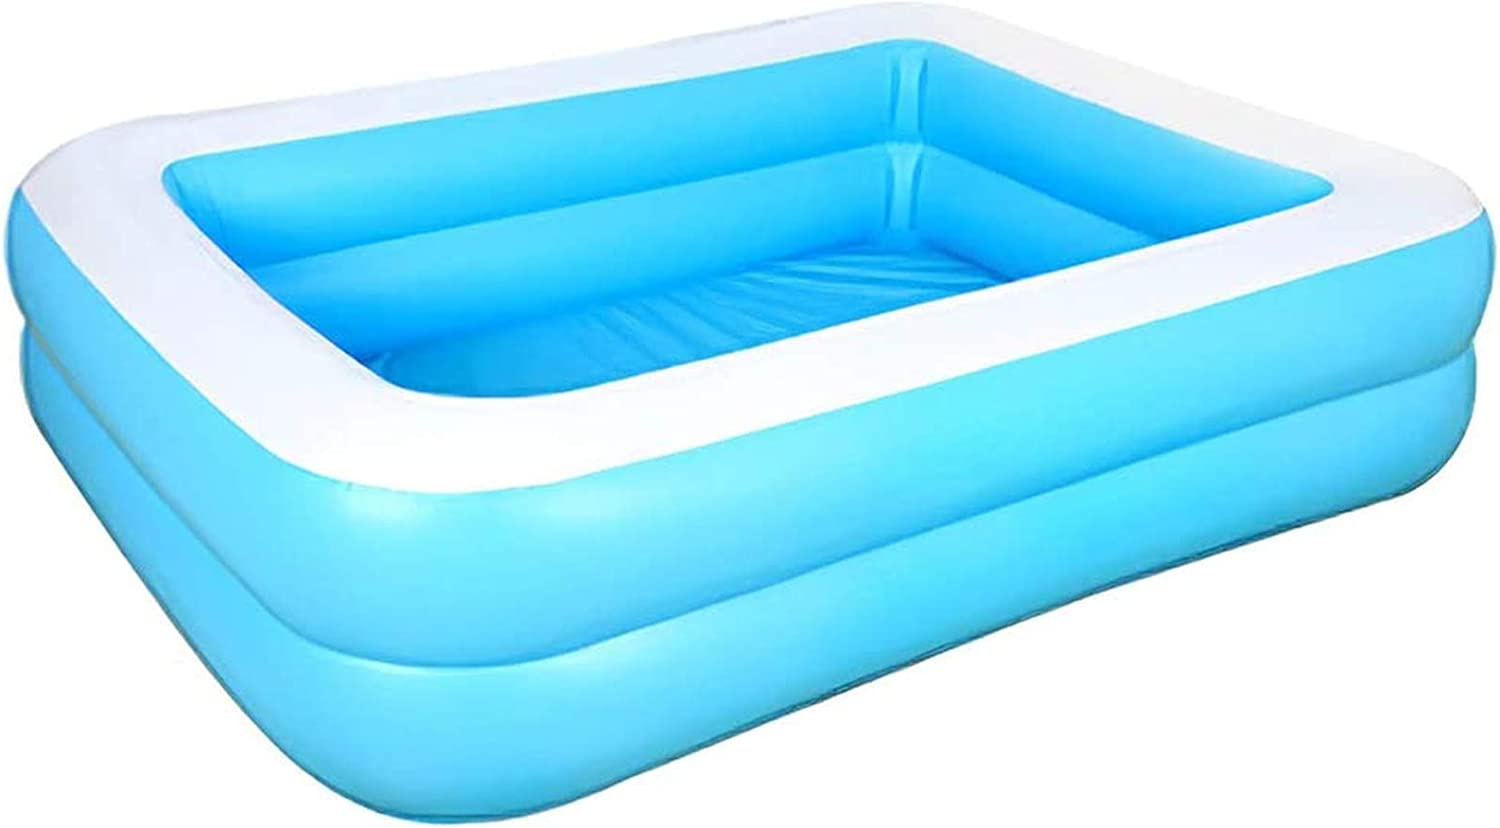 GALEI Inflatable Swimming Pools Leak-Proof Max 53% OFF Water OFFicial Above E Ground